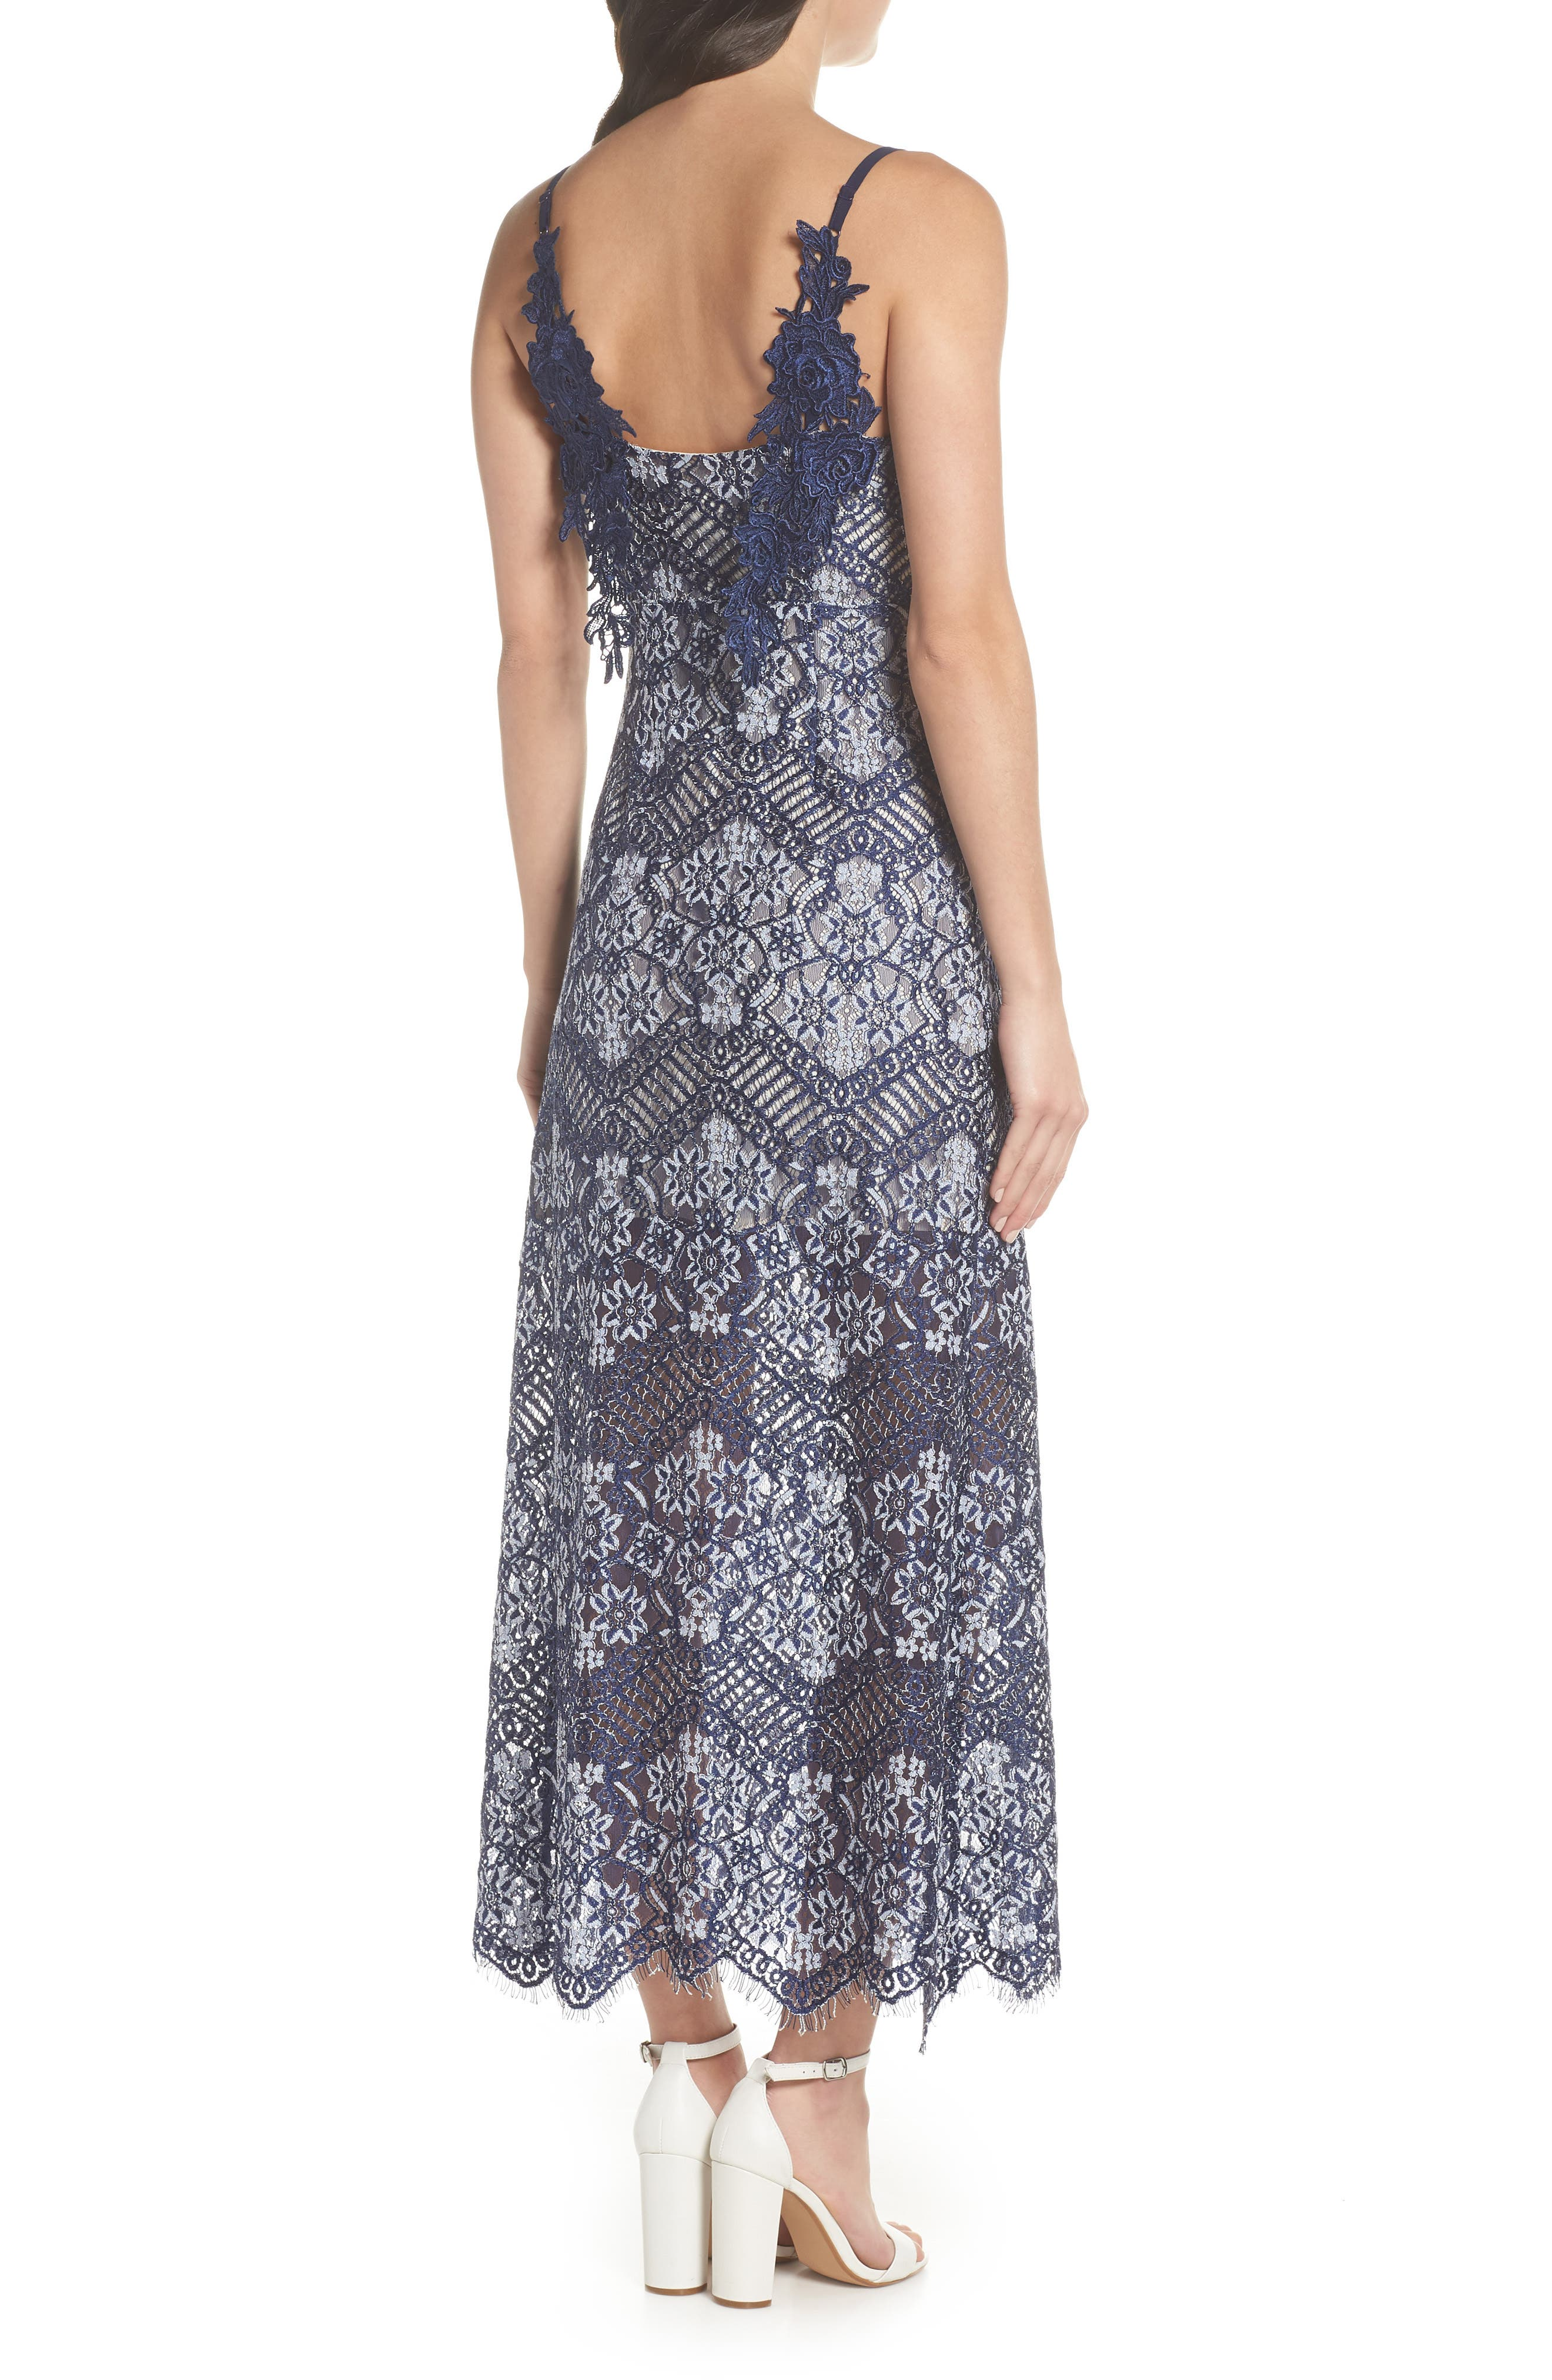 Daleyza Open Back Lace Gown,                             Alternate thumbnail 2, color,                             410